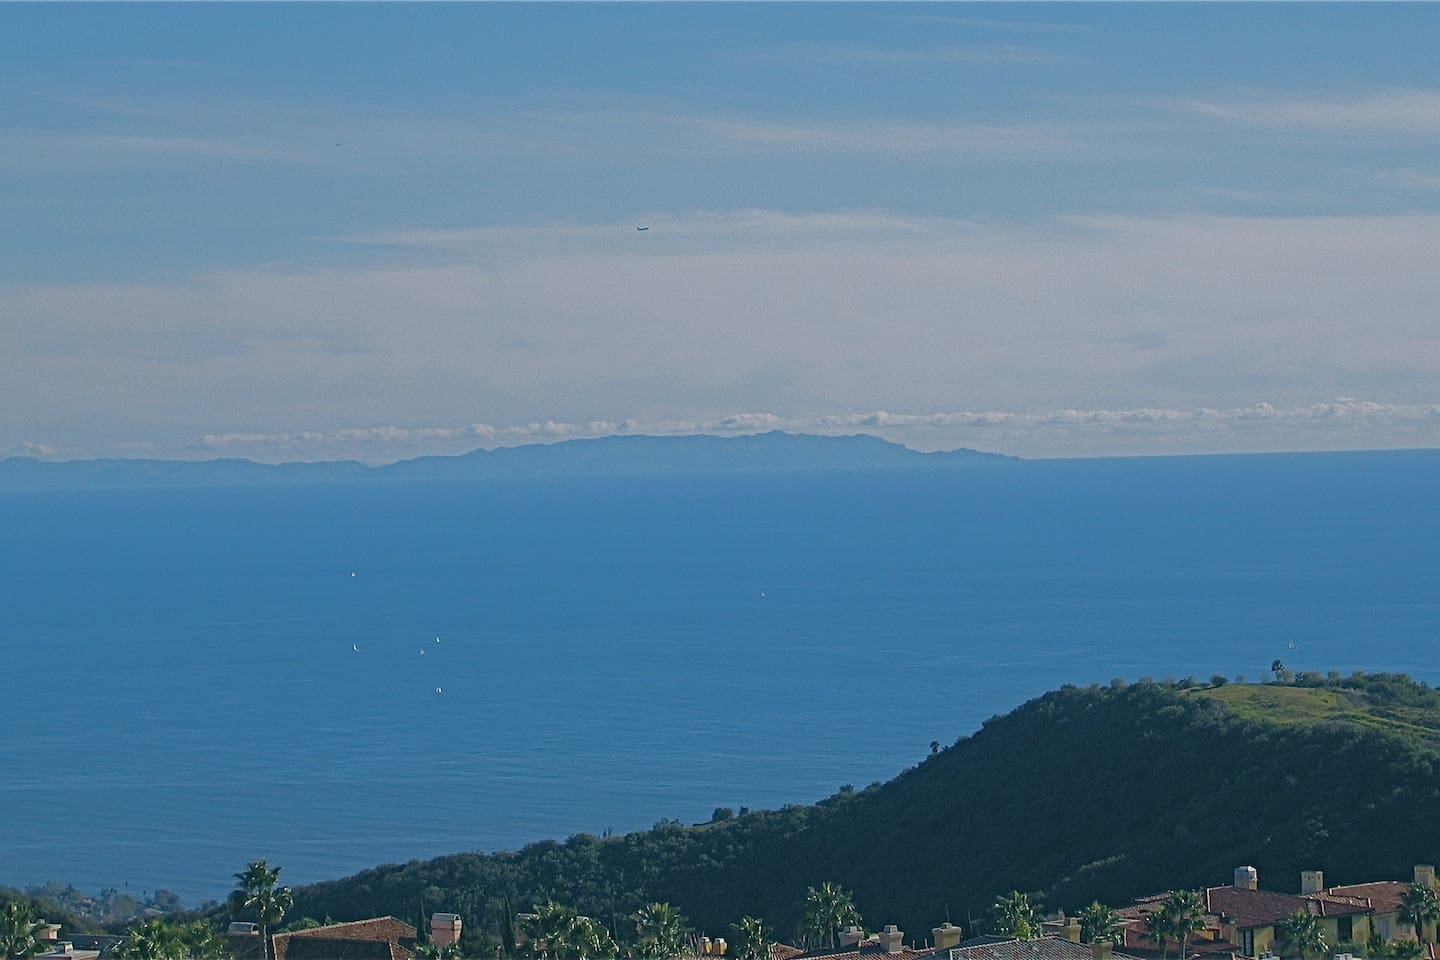 Lounge on the couches and enjoy this breathaking backyard view of Catalina Island, sailboats and the ocean